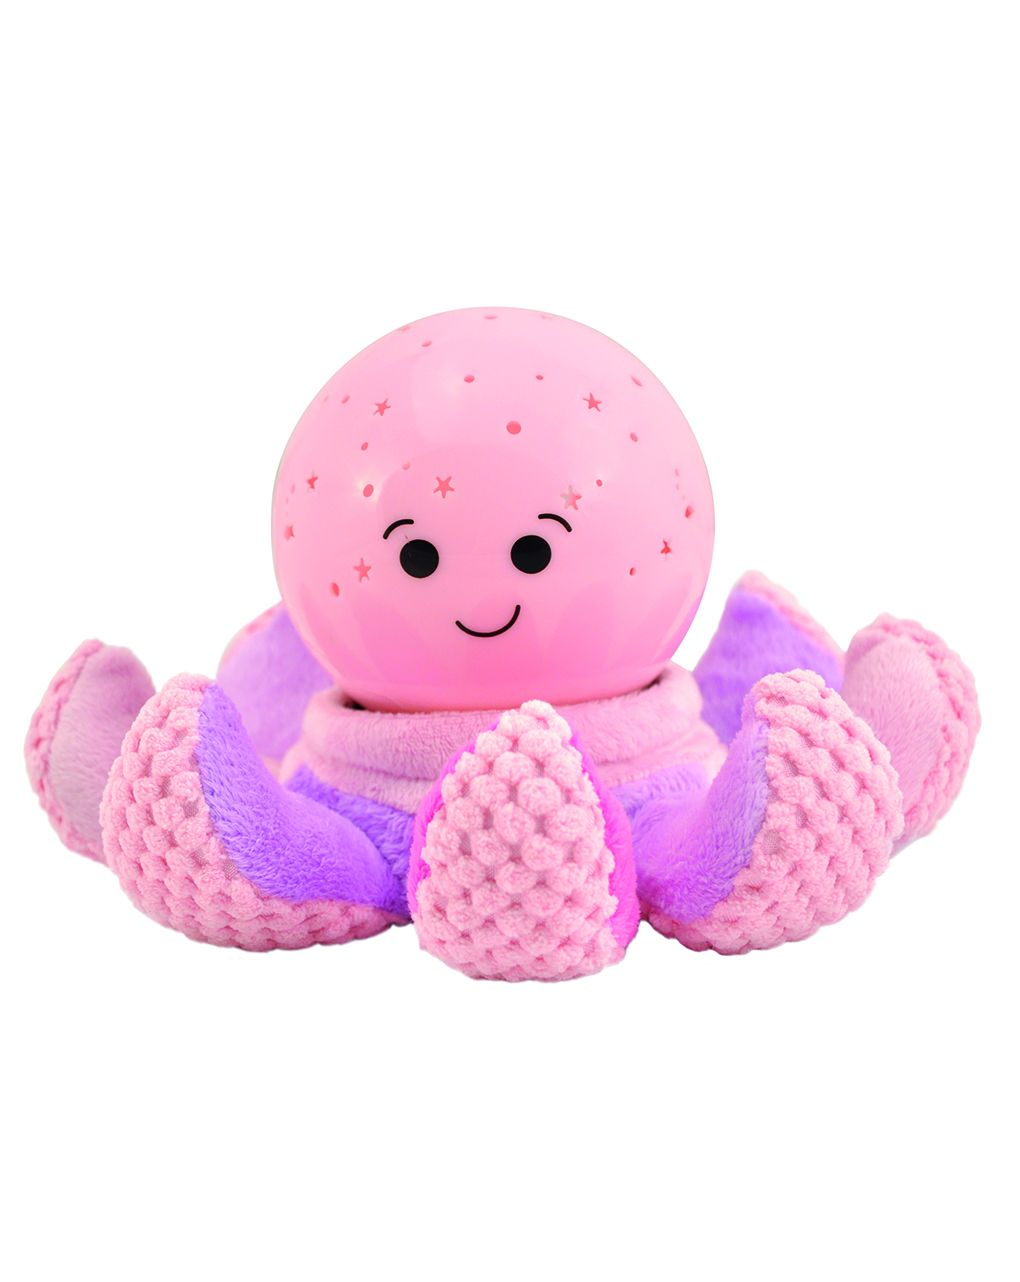 Cloud b - octo softzee pink - Cloud B